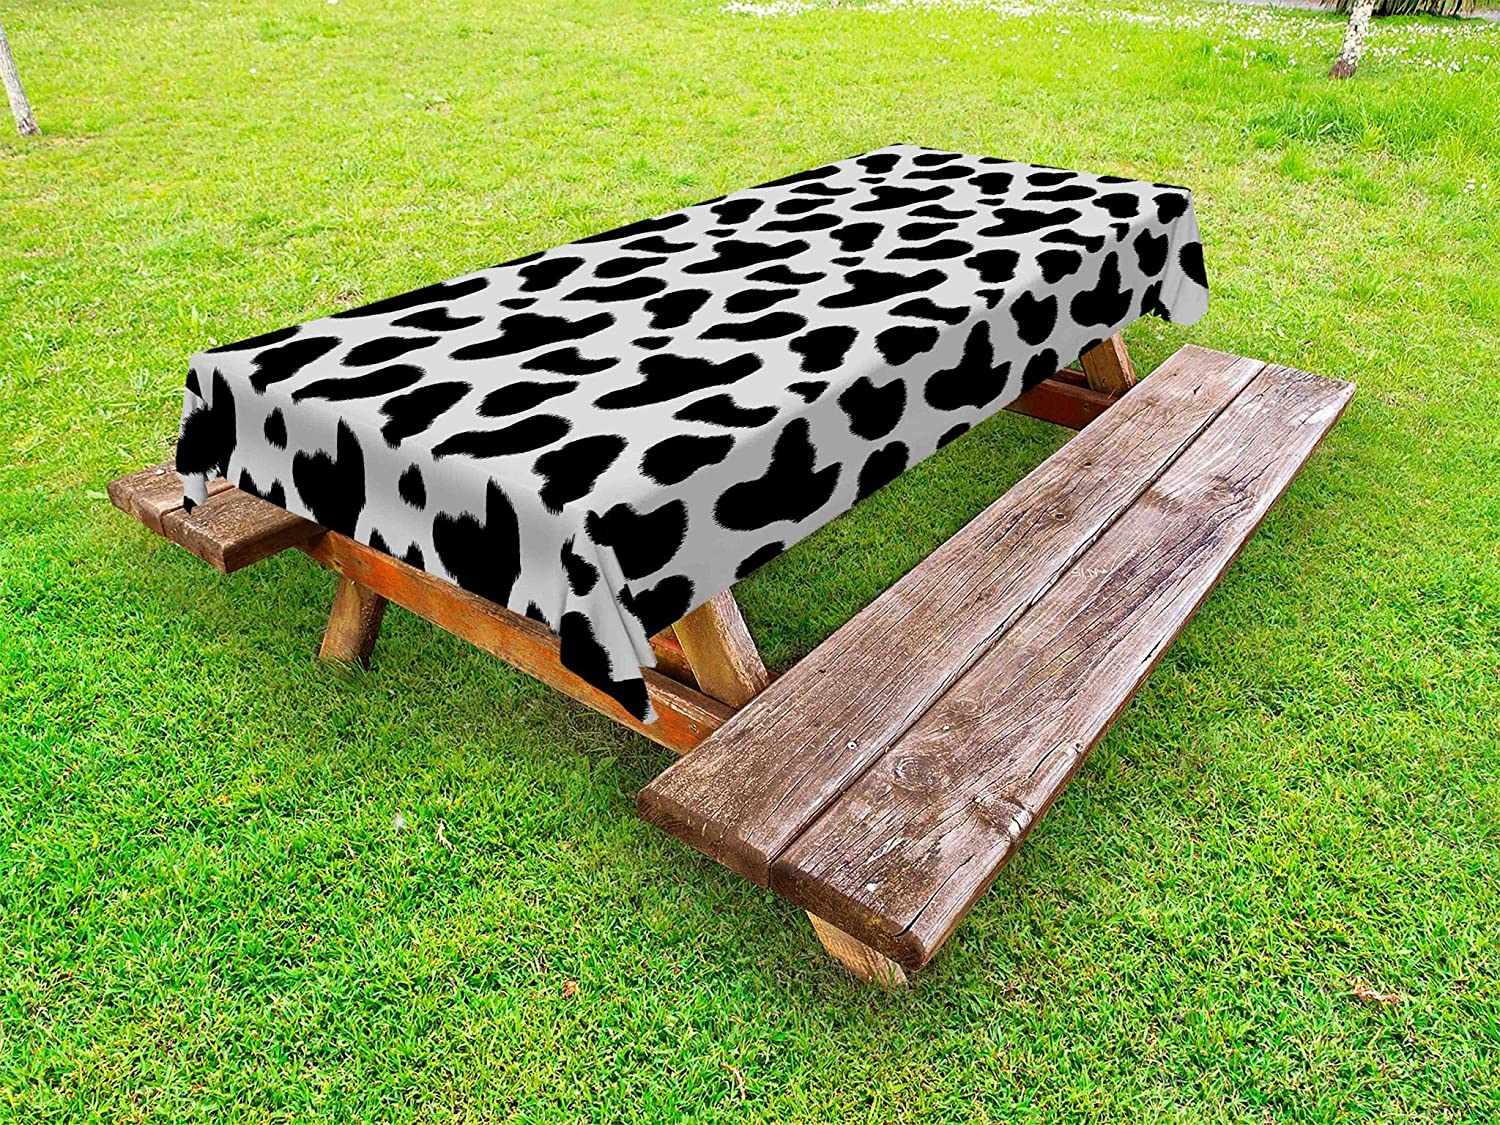 Ambesonne Cow Print Outdoor Tablecloth, Cow Hide Pattern with Spots Farm Life with Cattle Camouflage Animal Skin, Decorative Washable Picnic Table Cloth, 58